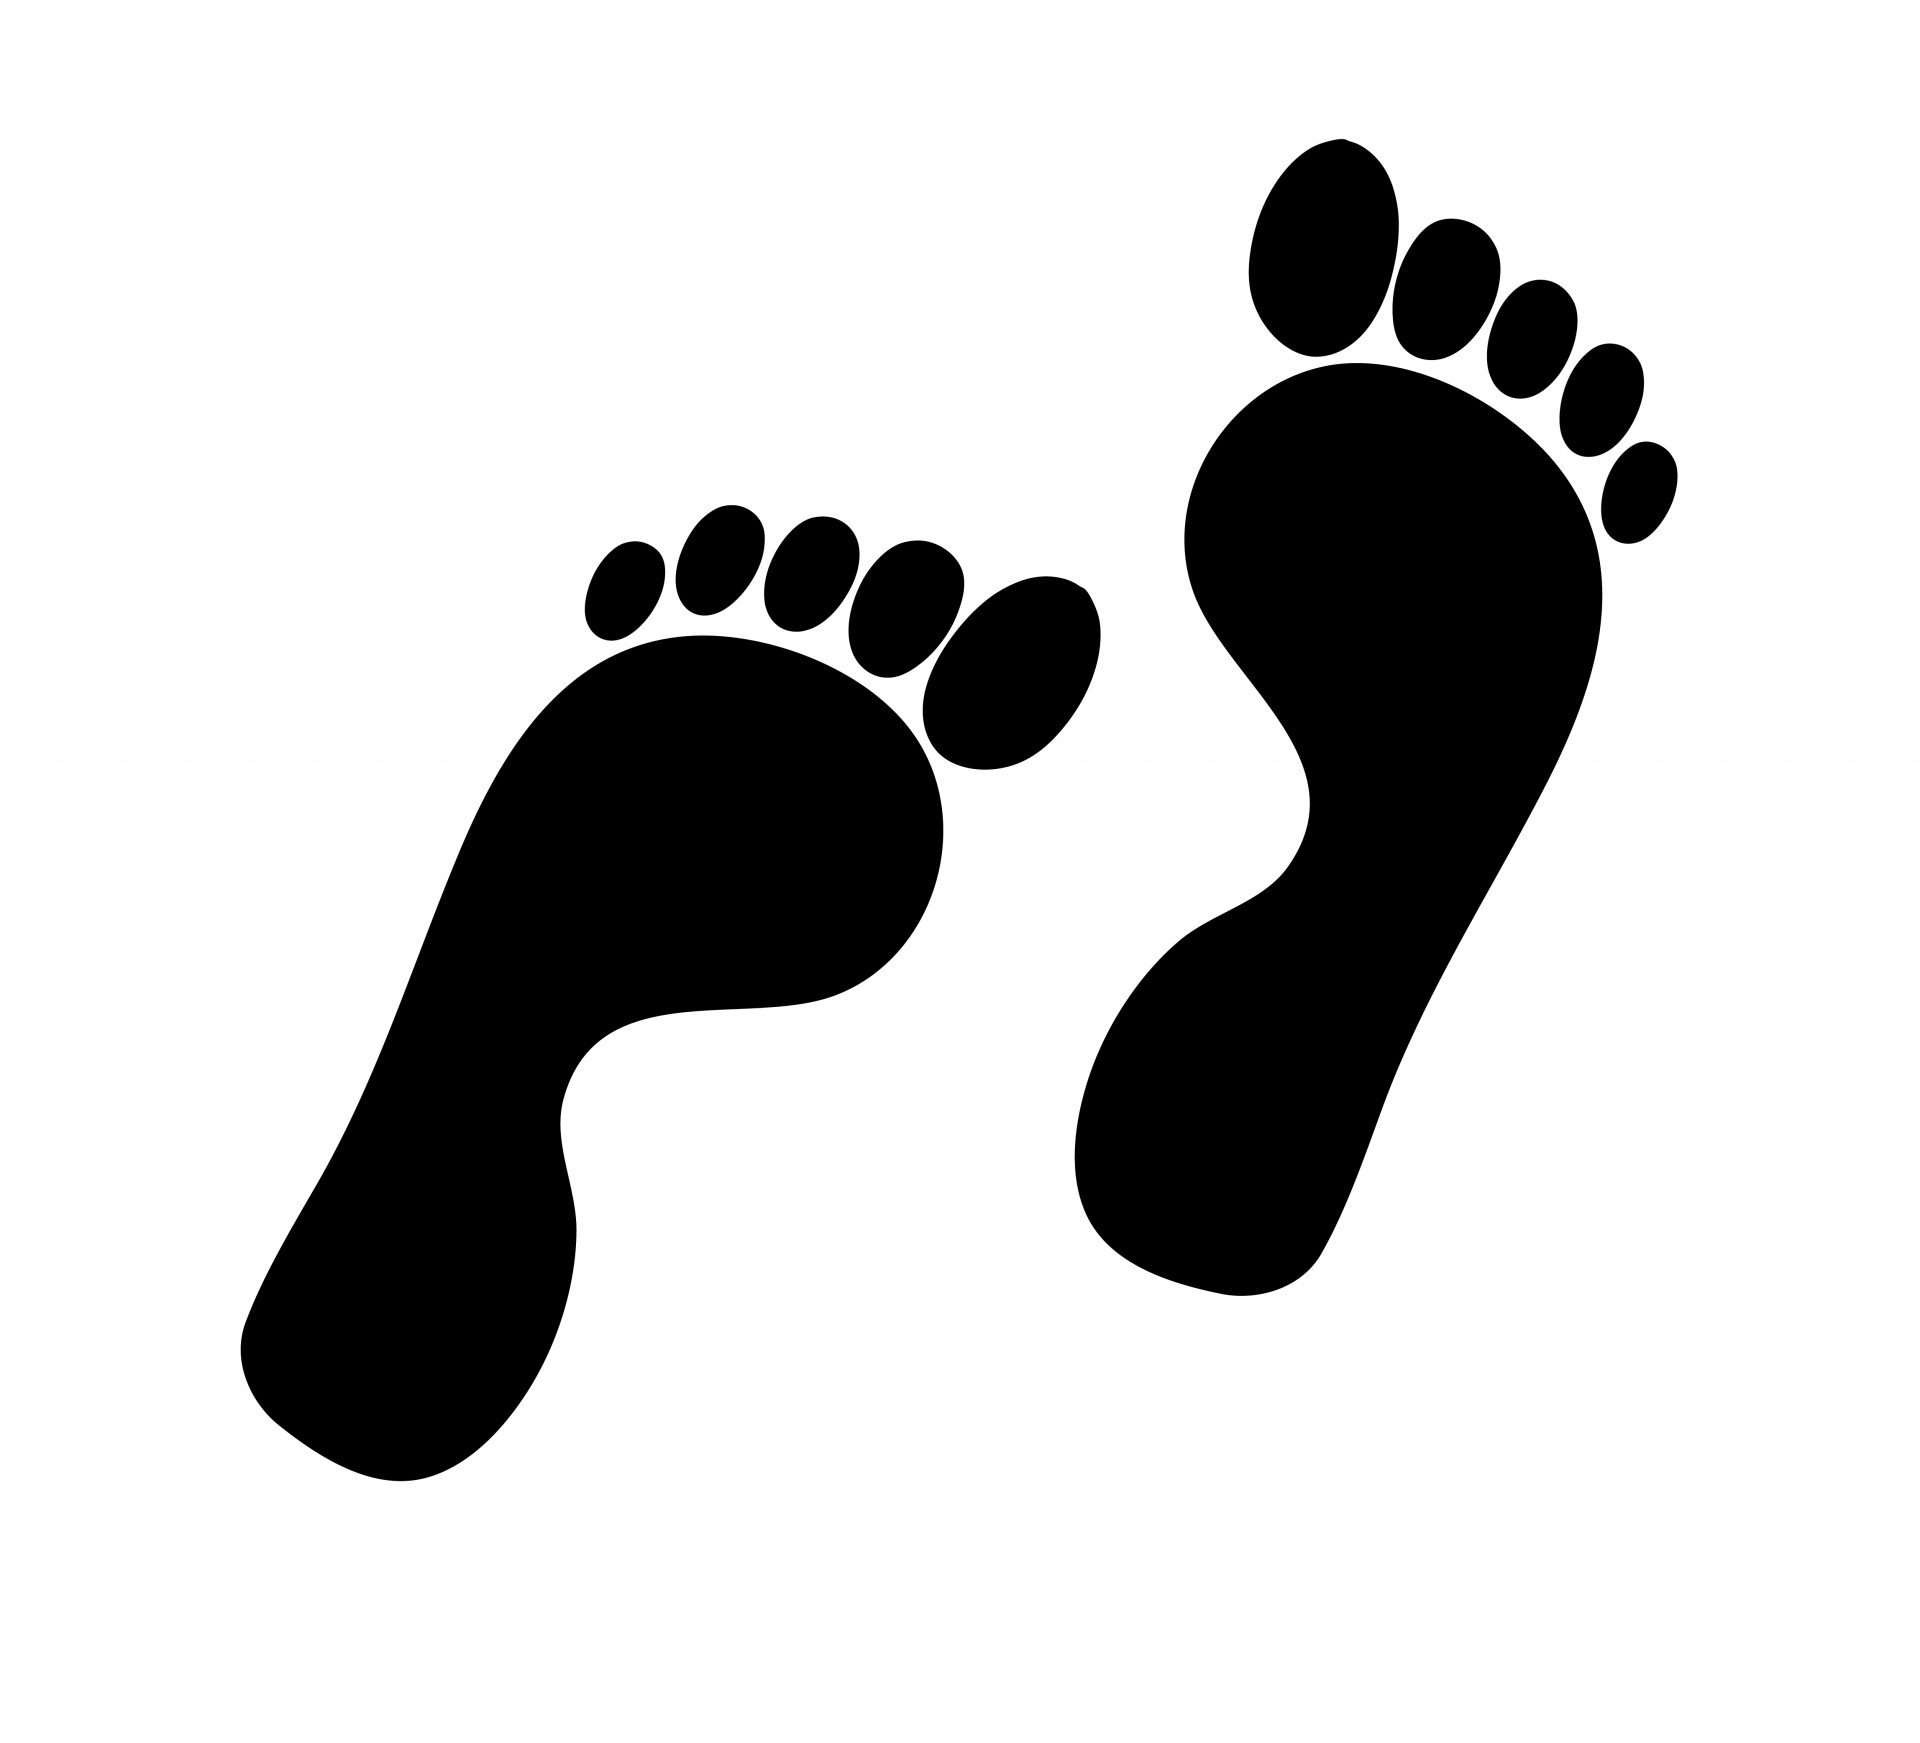 clipart of footprints free #7